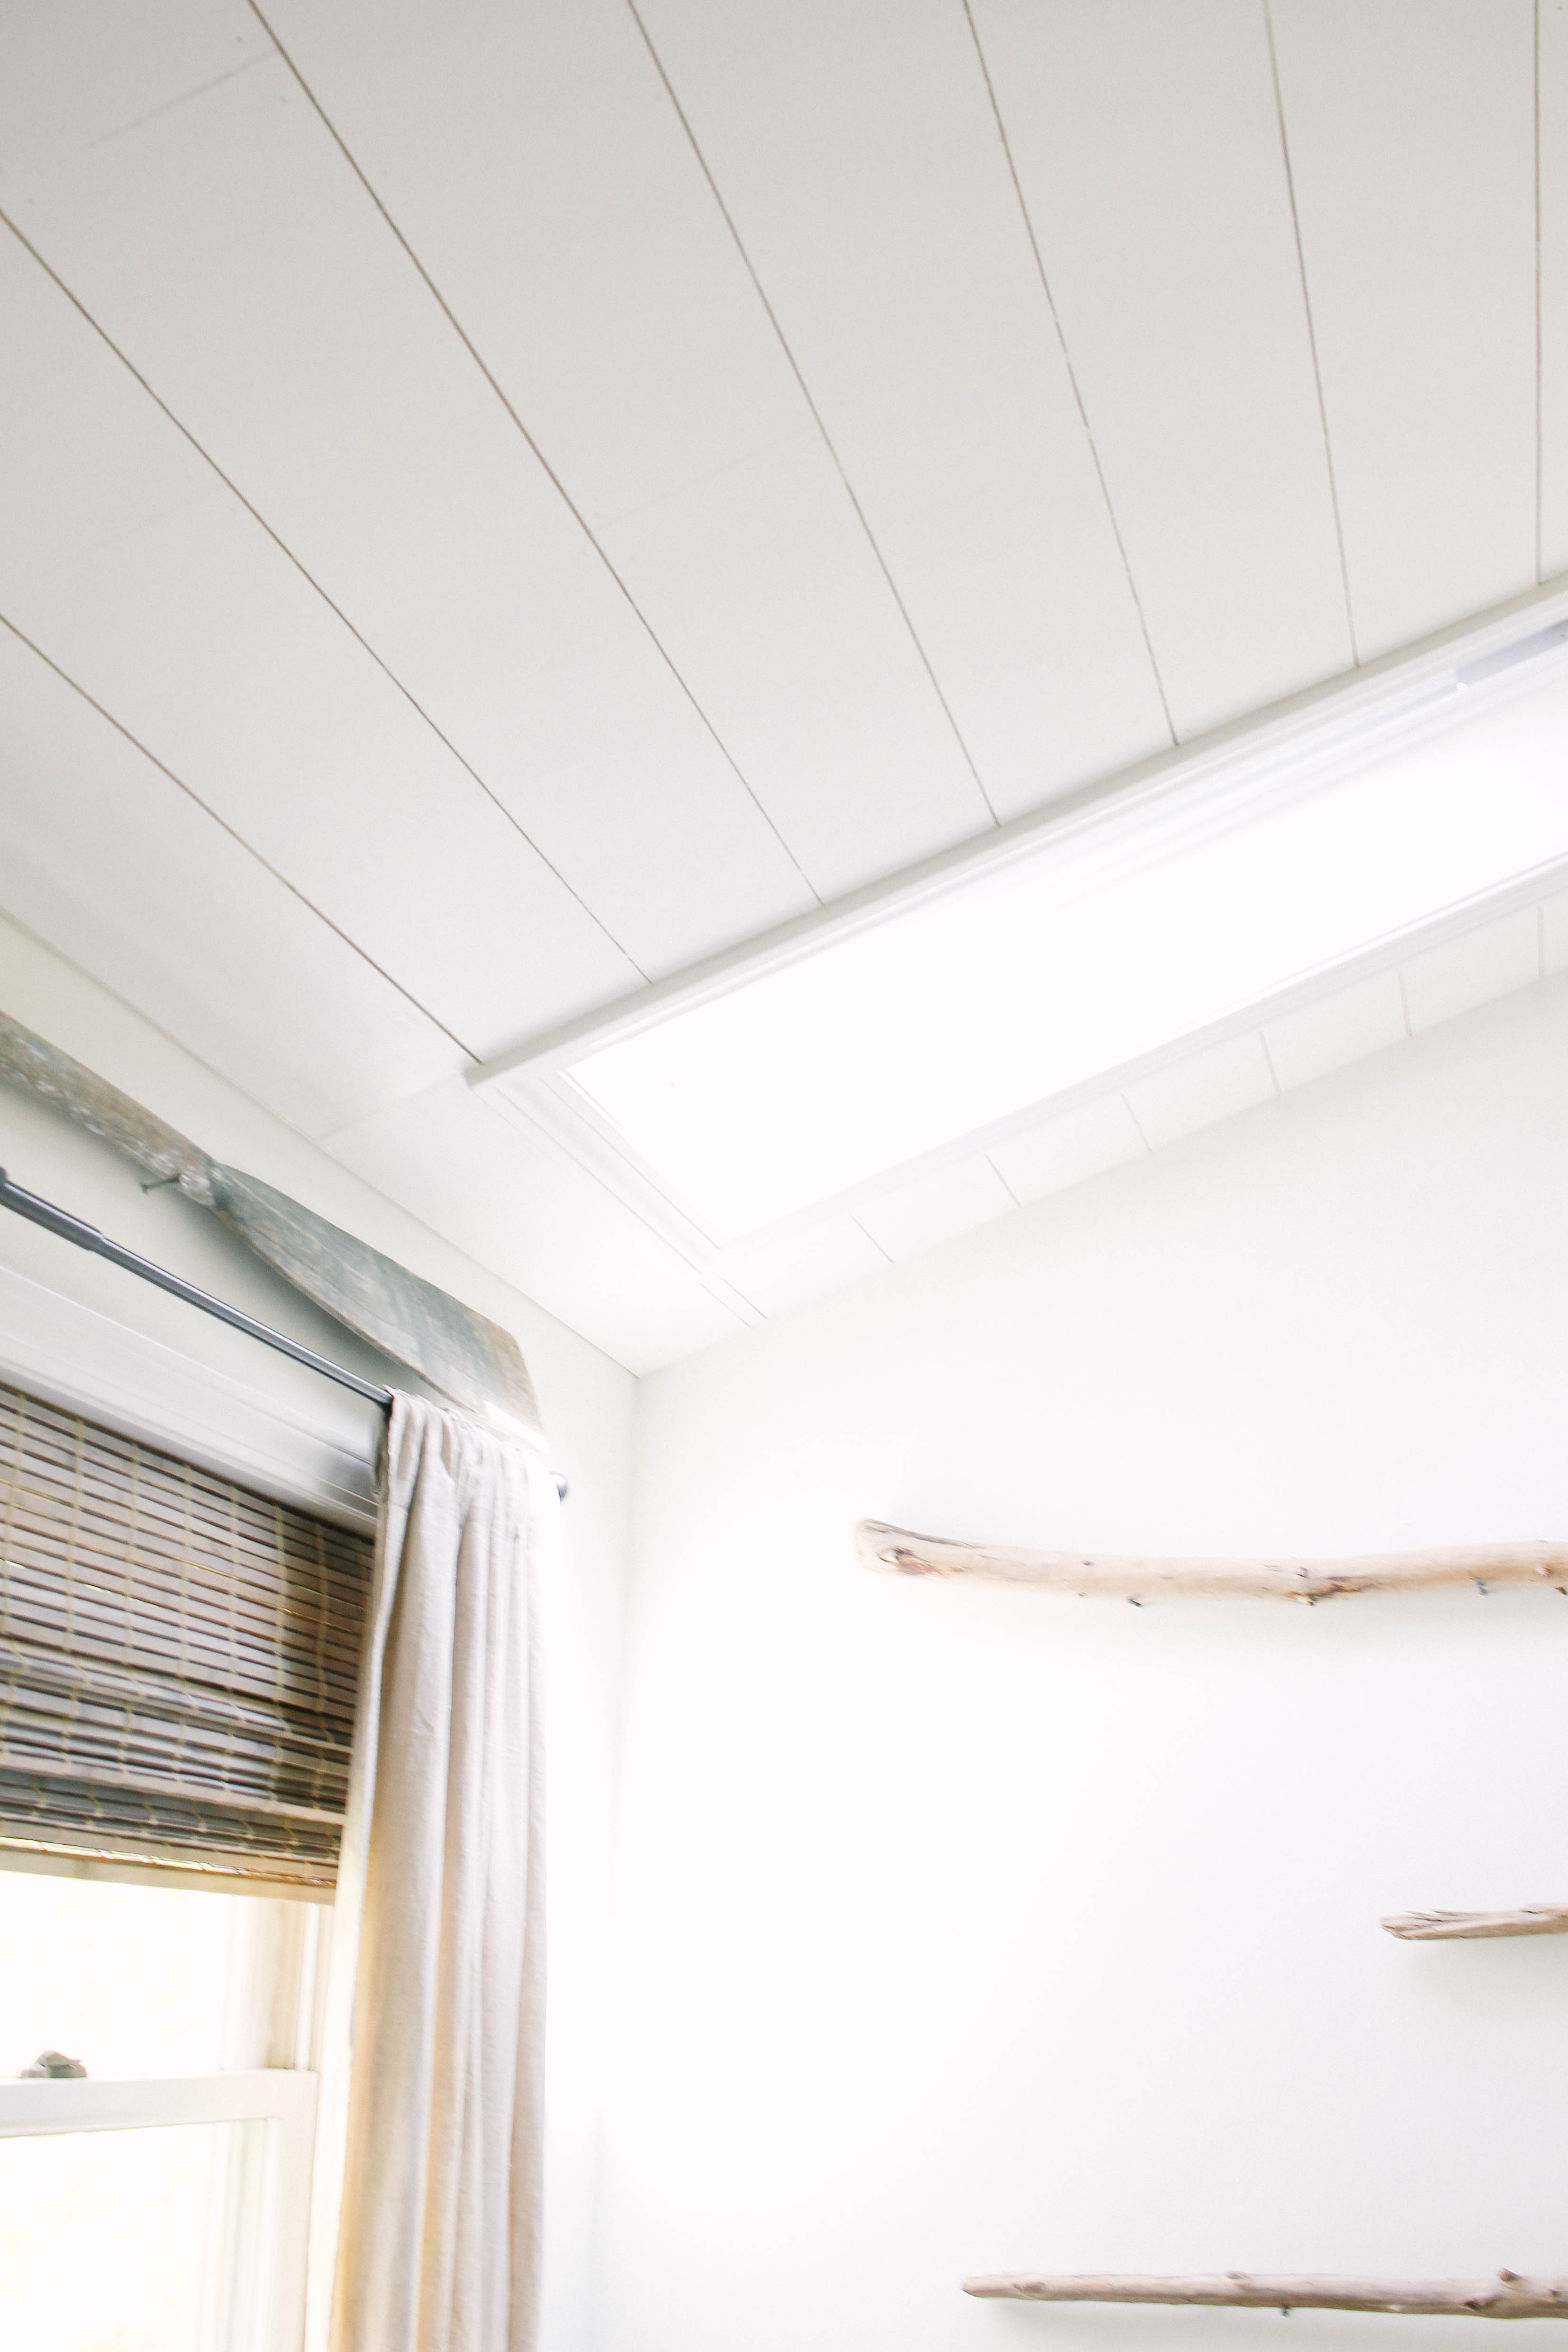 How to Update Your Fifth Wall, including tips on choosing skylight installation and adding architectural details to enhance the space.